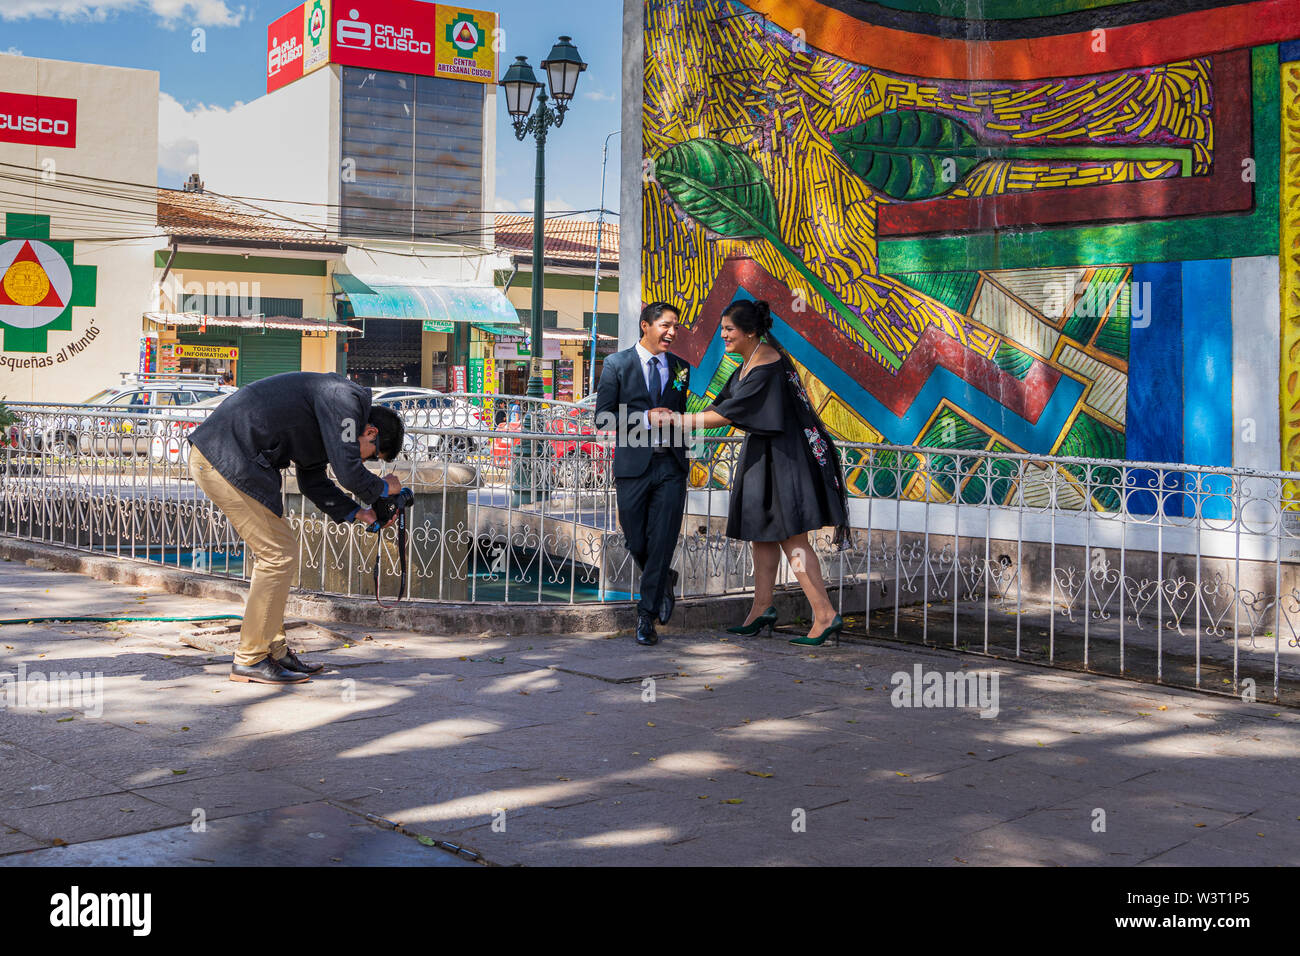 Wedding couple dressed in black being photographed in front of a colourful mural in Cusco, Peru, South America - Stock Image